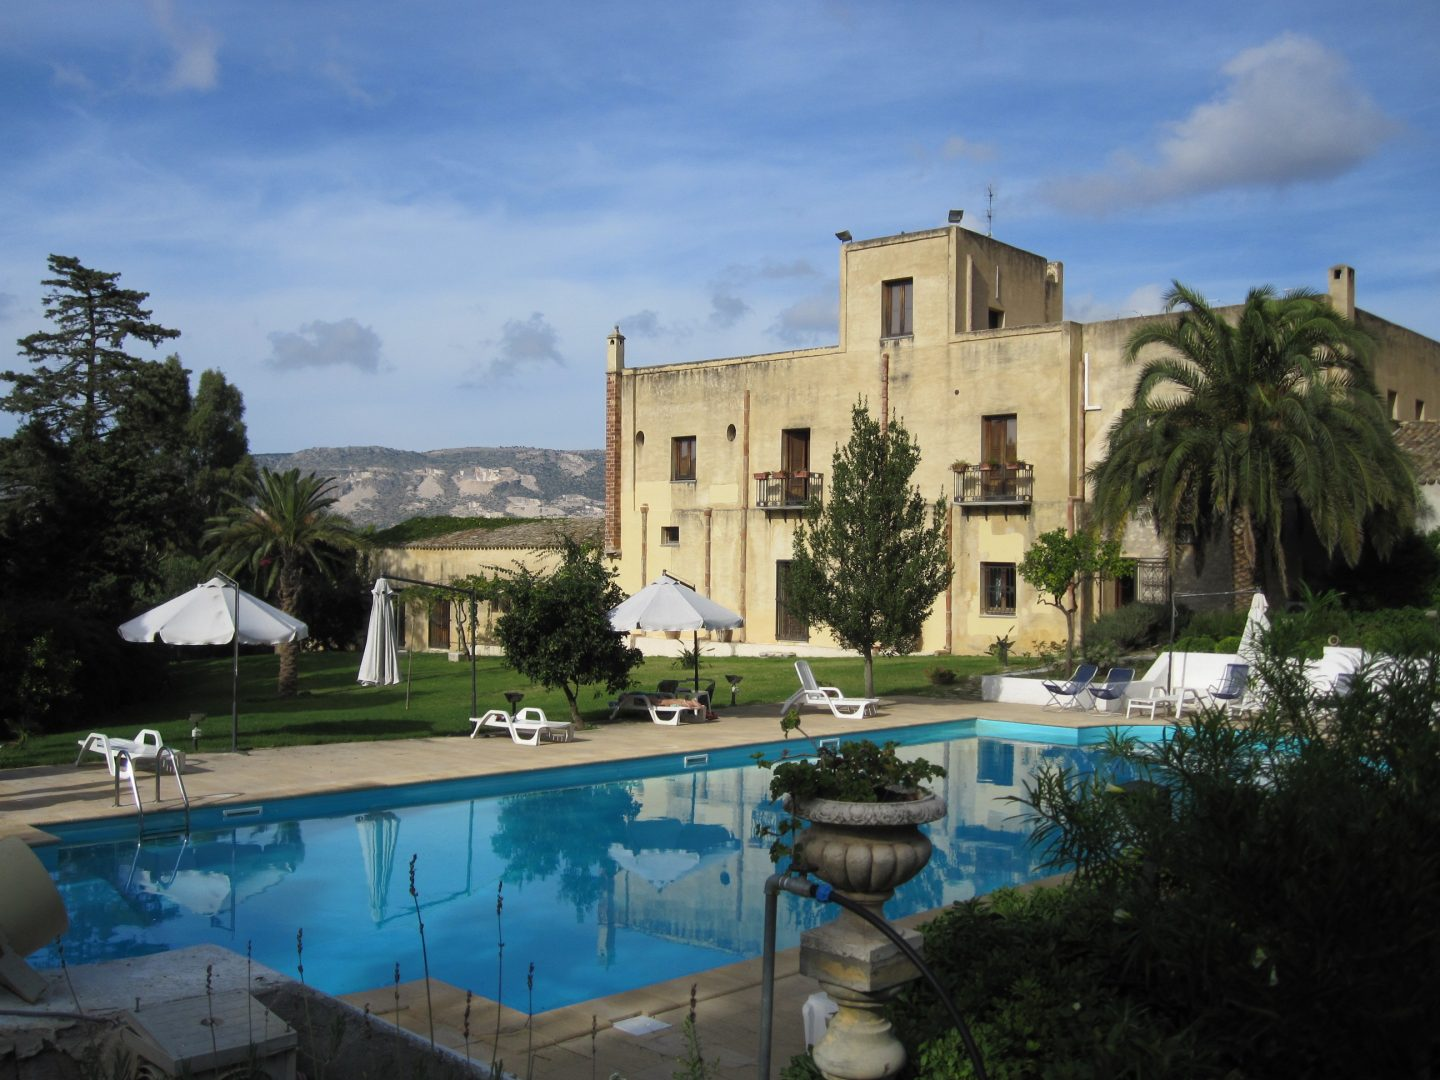 Baglio agriturismo in western Sicily, beaches of Sicily